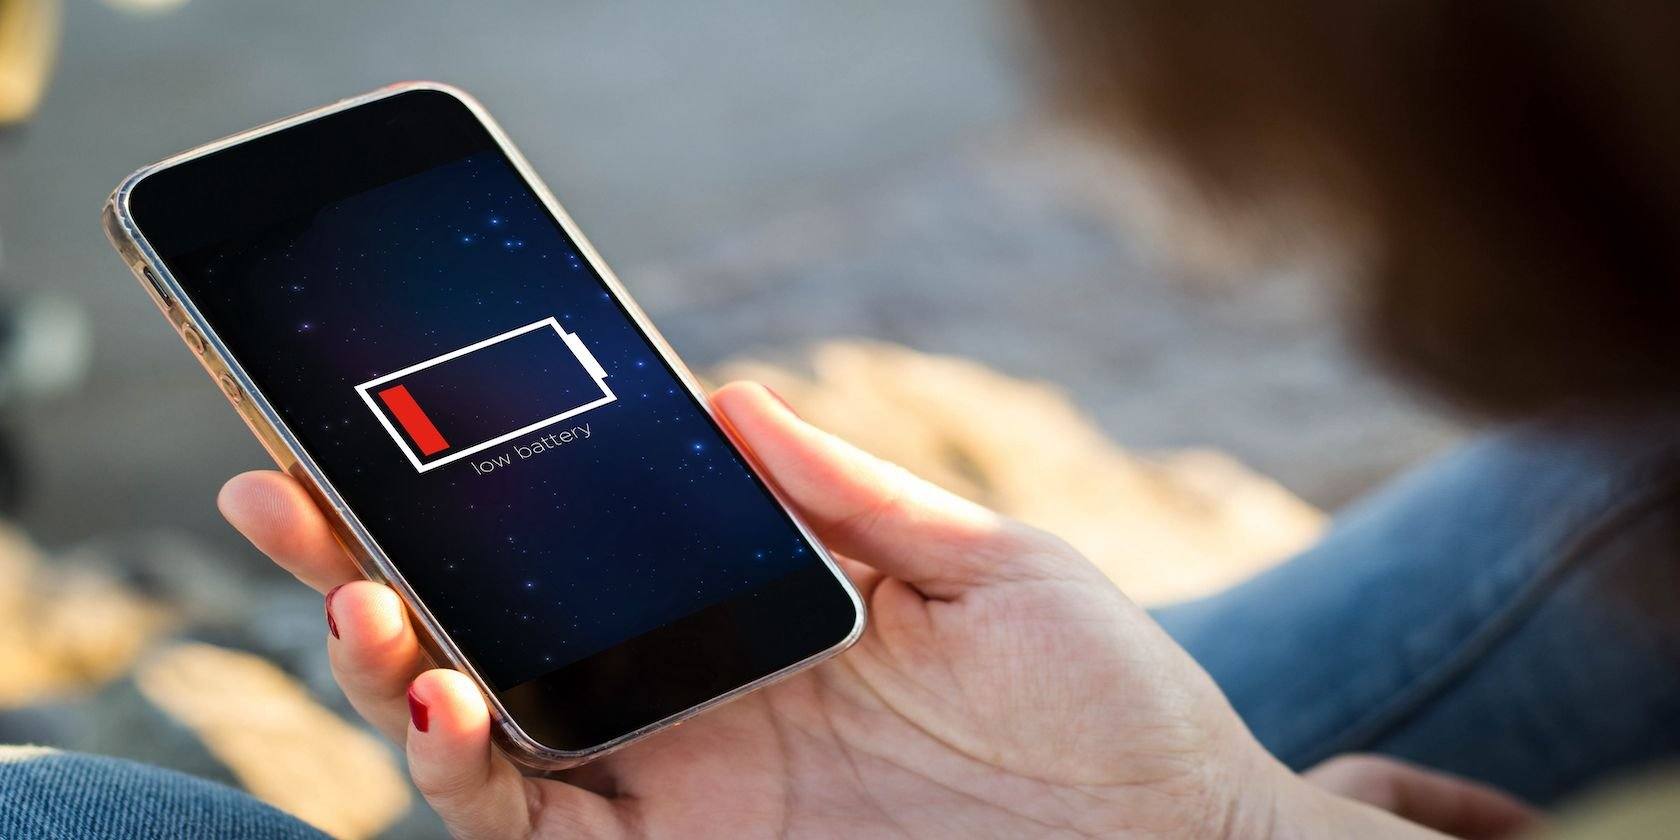 The 7 Best Smartphones for Battery Life